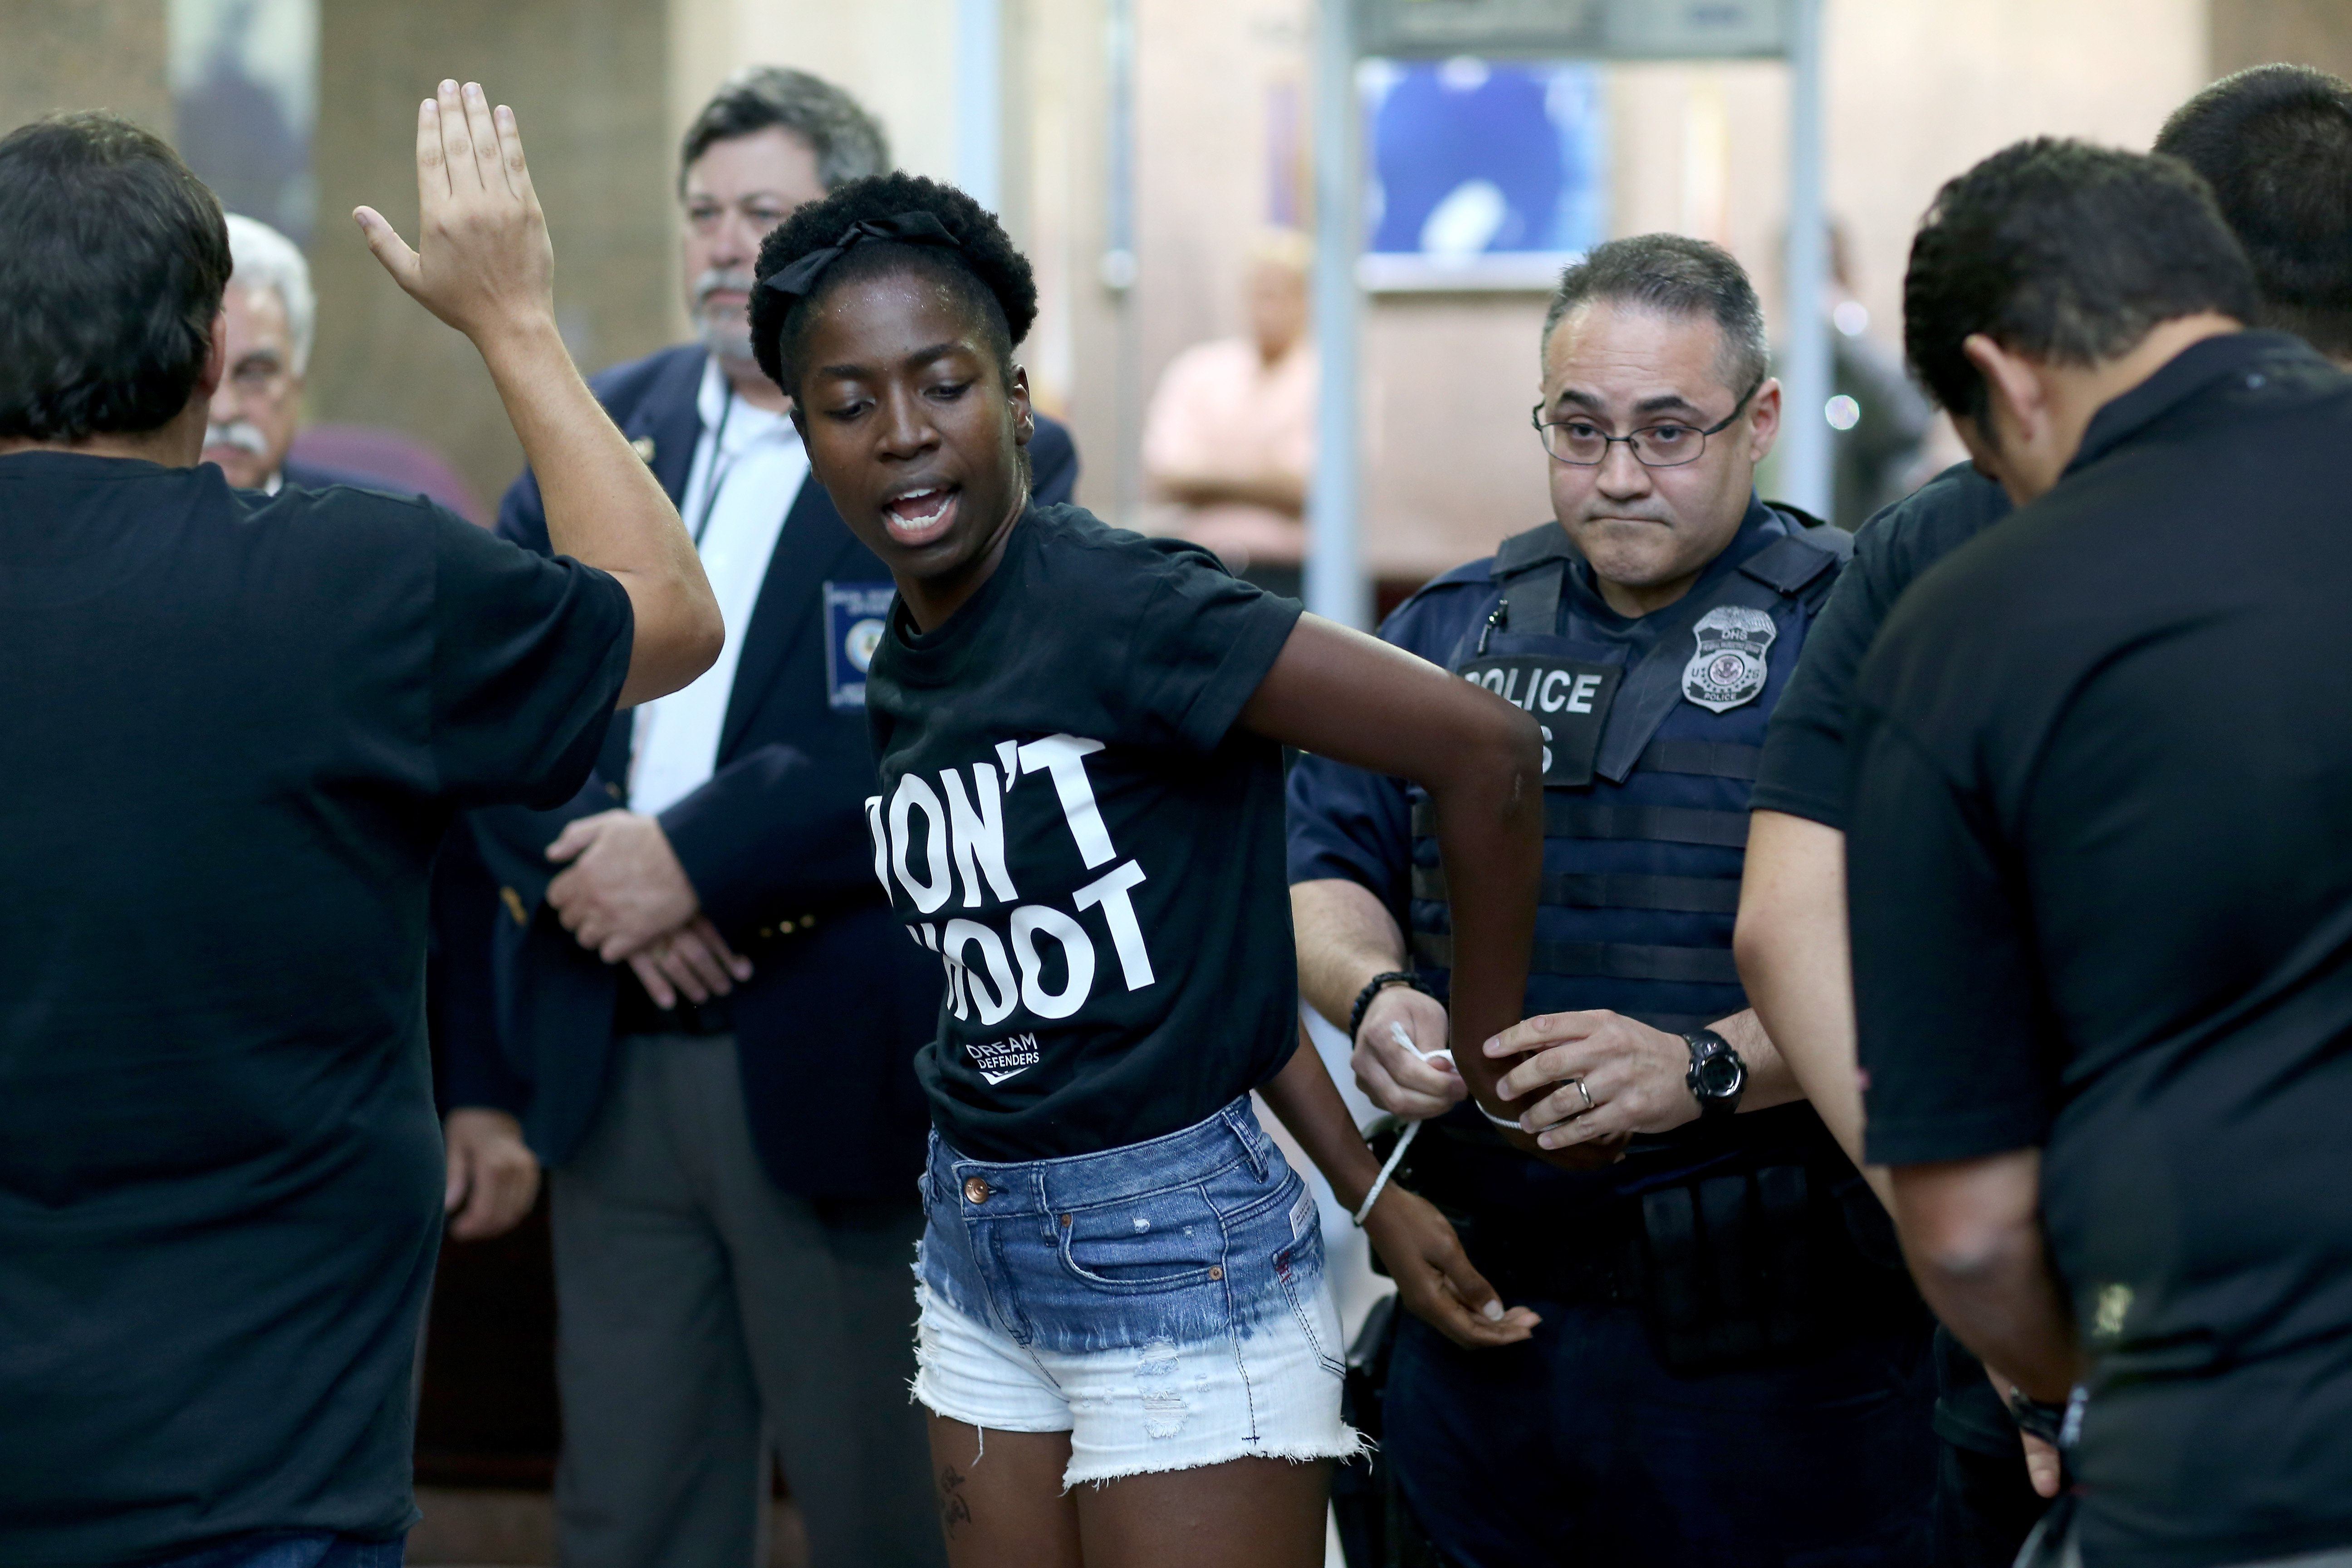 Marie Paul is arrested by police in the James Lawrence King Federal Justice Building on August 14, 2014 in Miami. The protesters, which included members of the civil rights group Dream Defenders, say they want justice for Mike Brown.